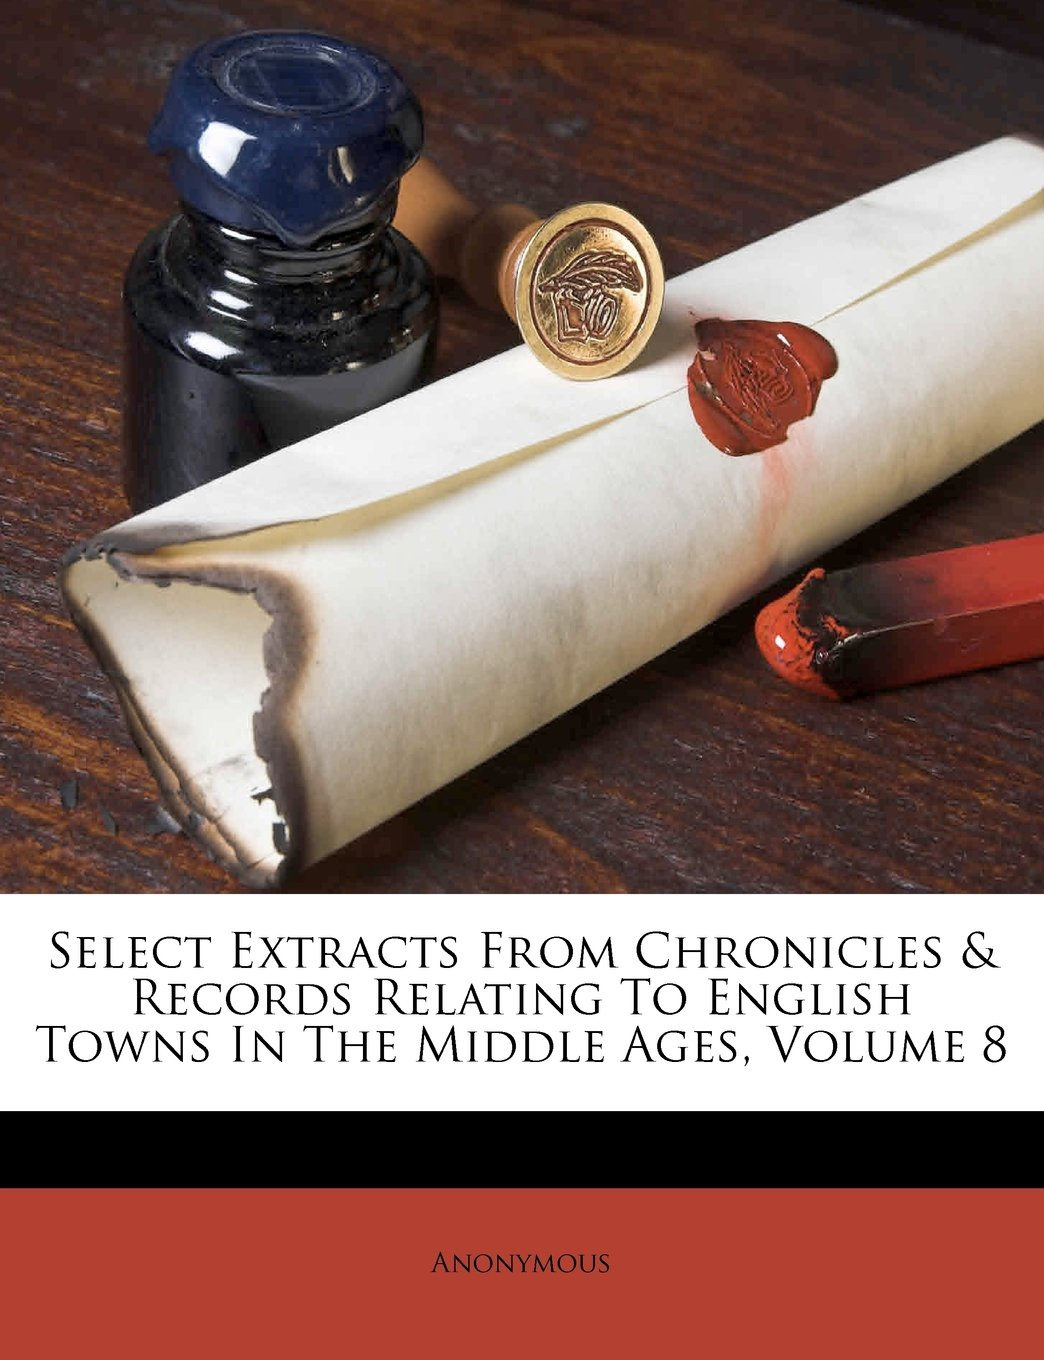 Select Extracts From Chronicles & Records Relating To English Towns In The Middle Ages, Volume 8 (Latin Edition) pdf epub